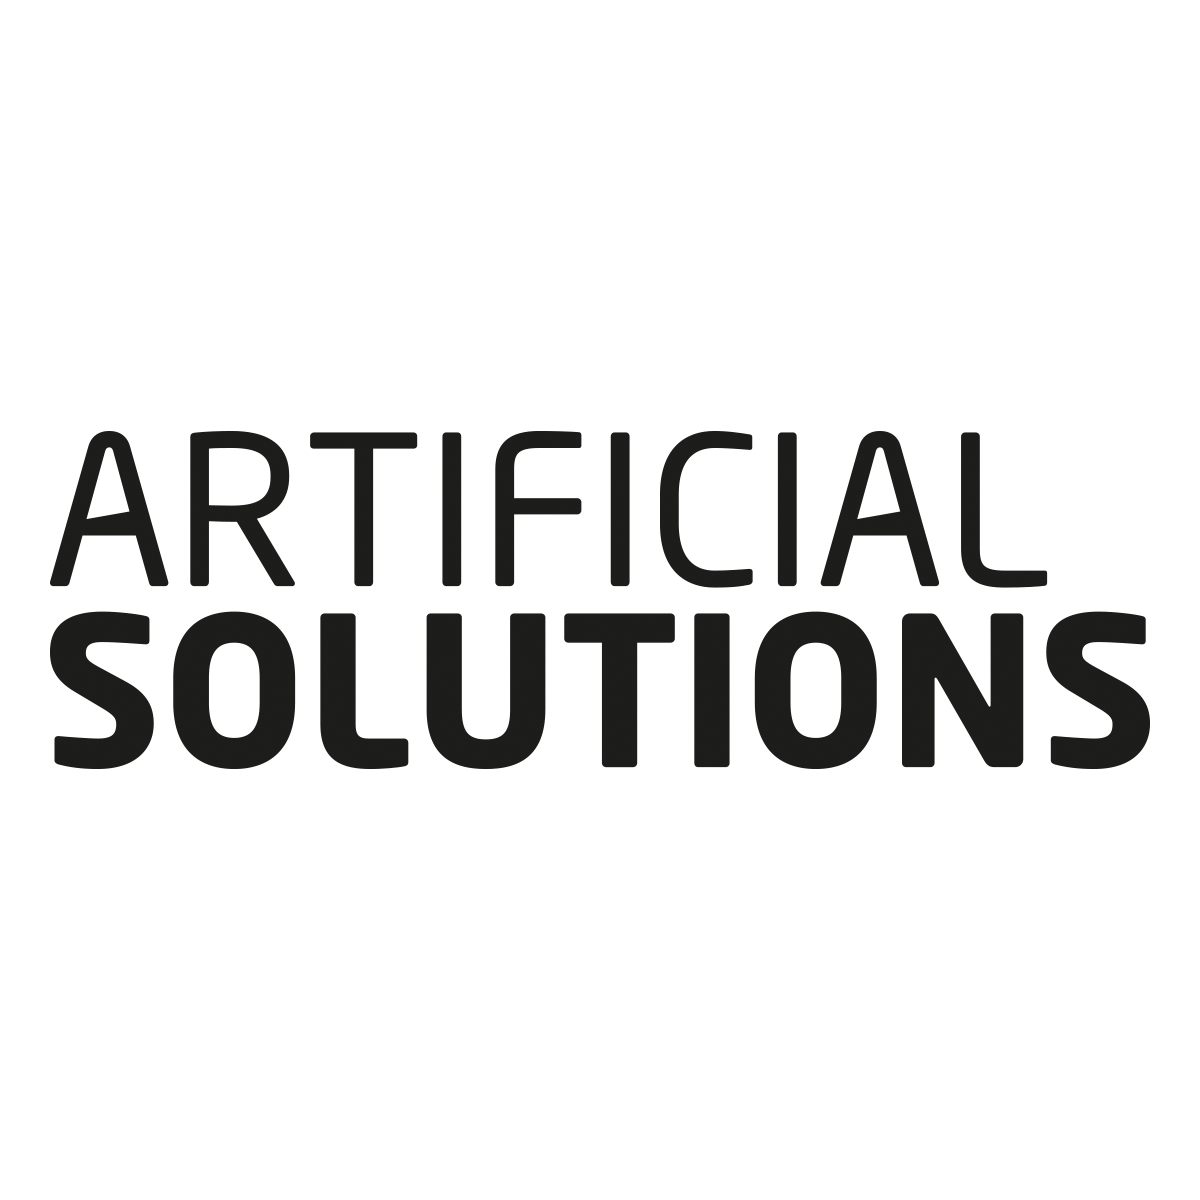 Artificial Solutions, UiPath Partner